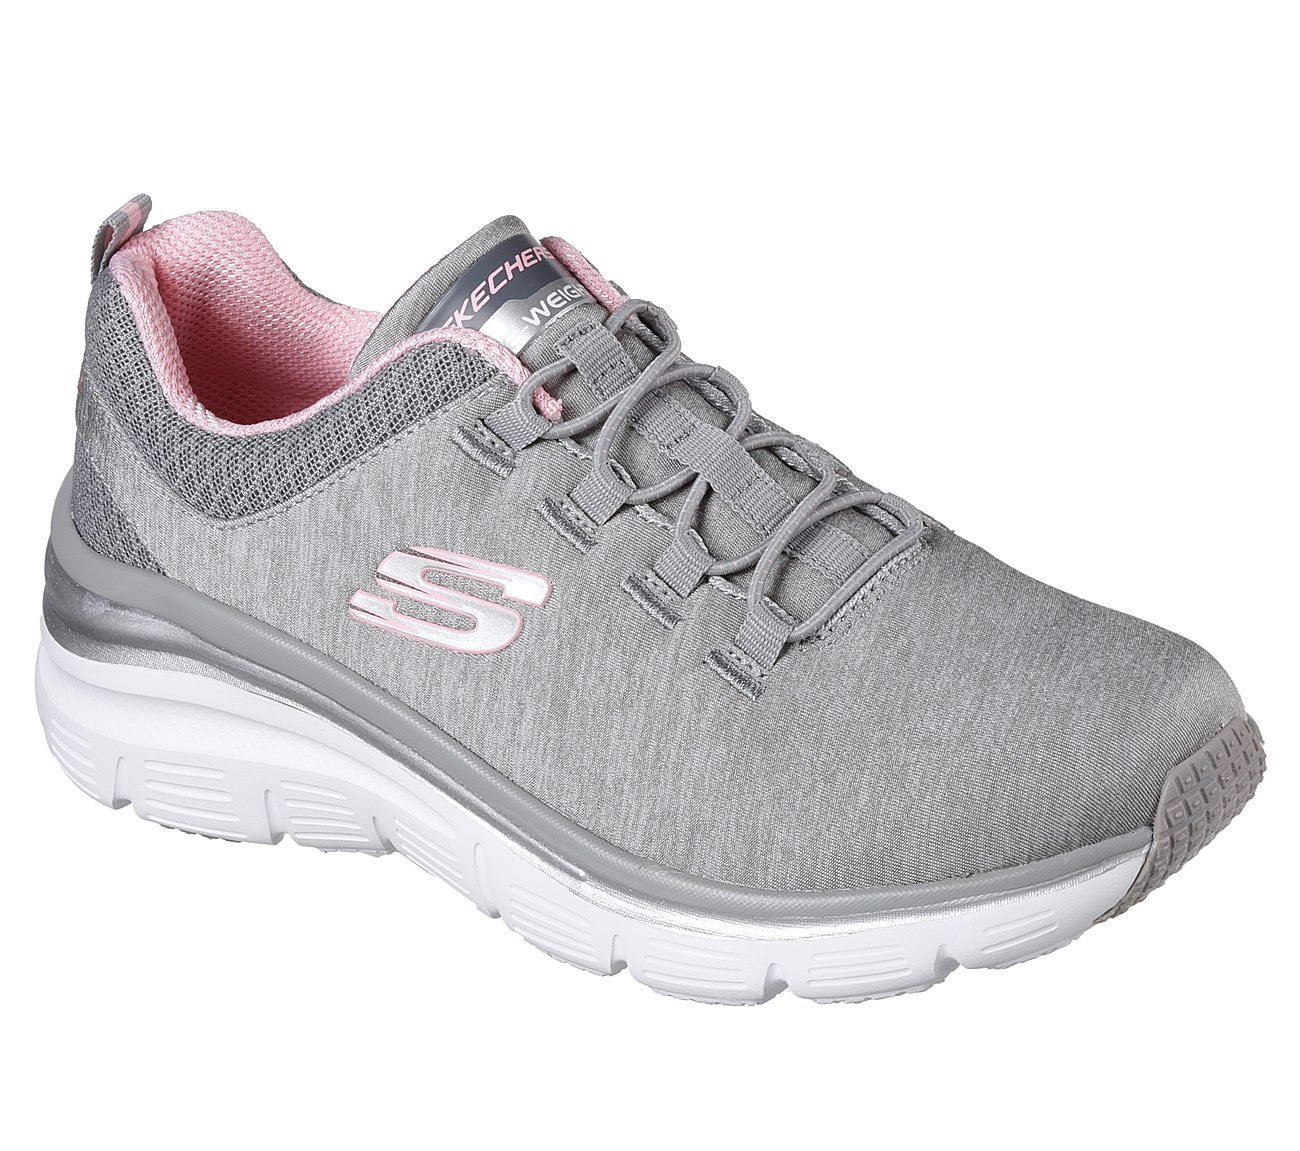 Skechers Fashion Fit Up A Level Womens Slip On Sneakers Gray/Light Pink 10